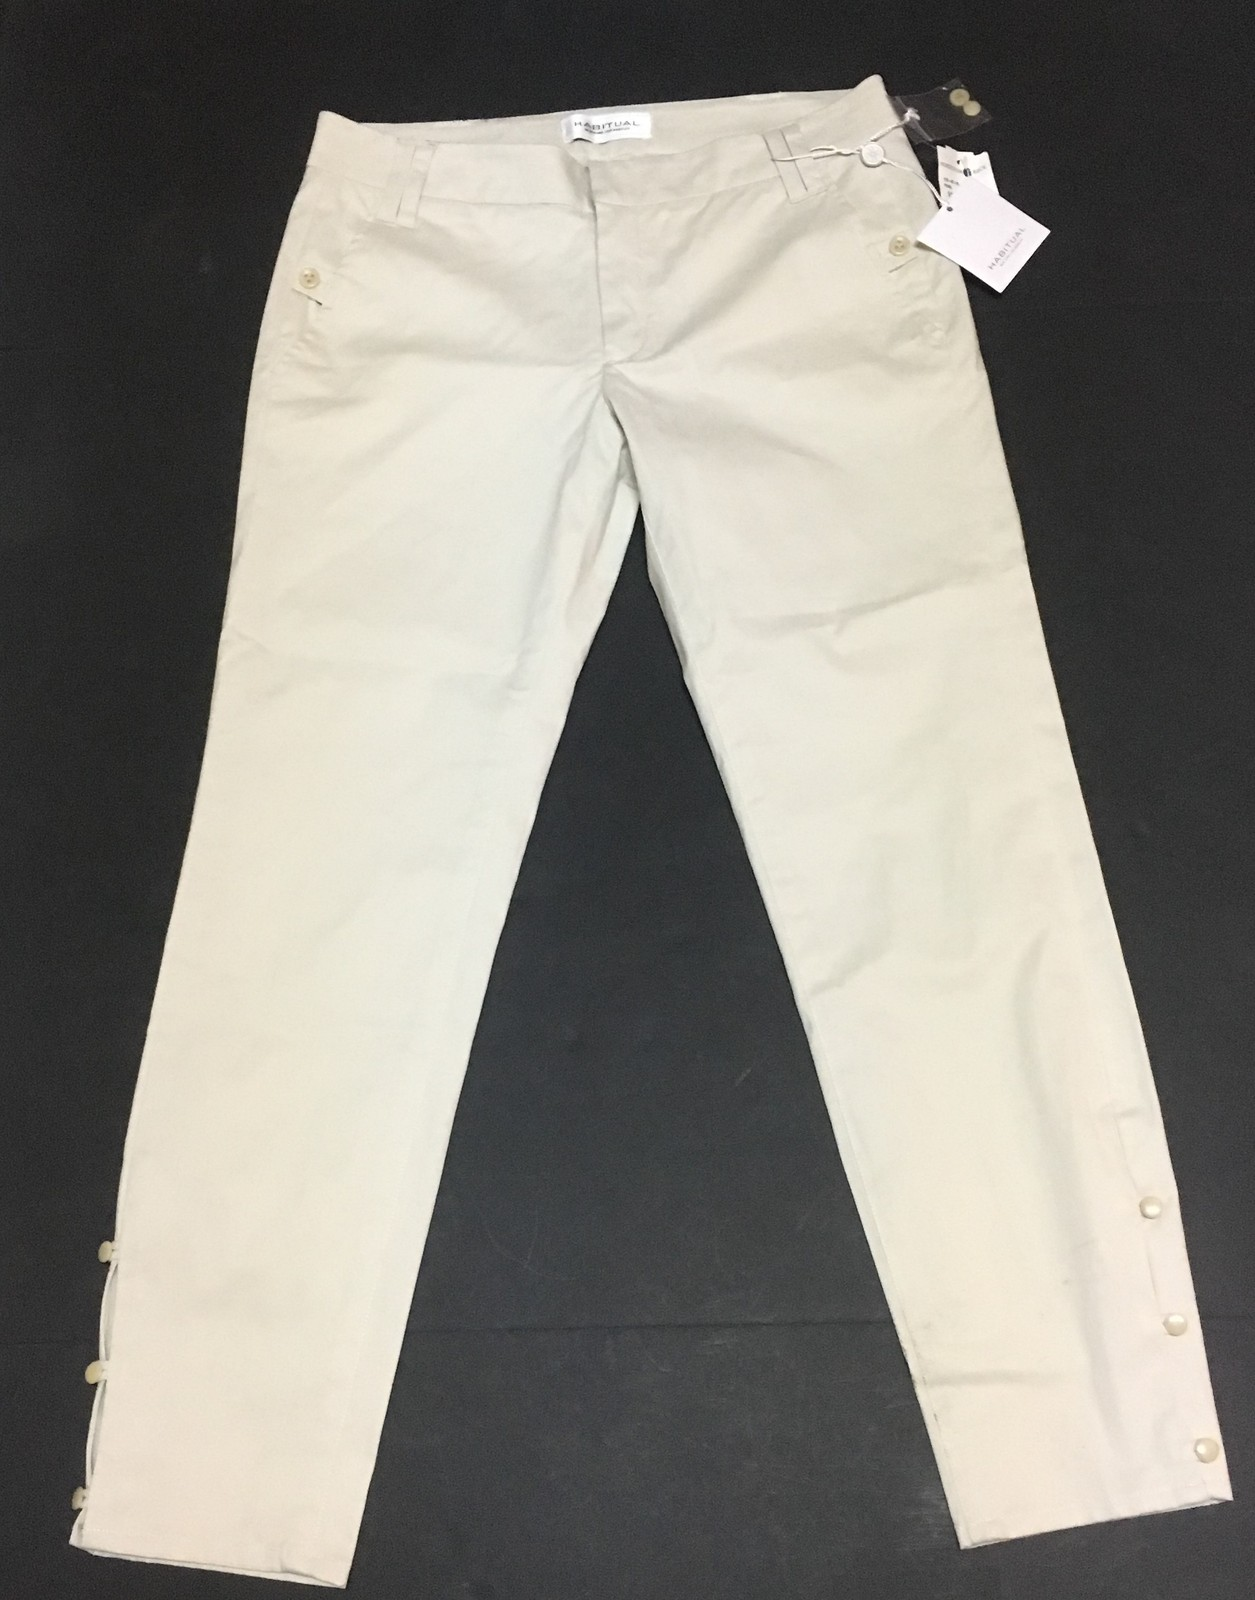 Women's Ankle Pants Sz 6 Pearl Nordstrom Habitual